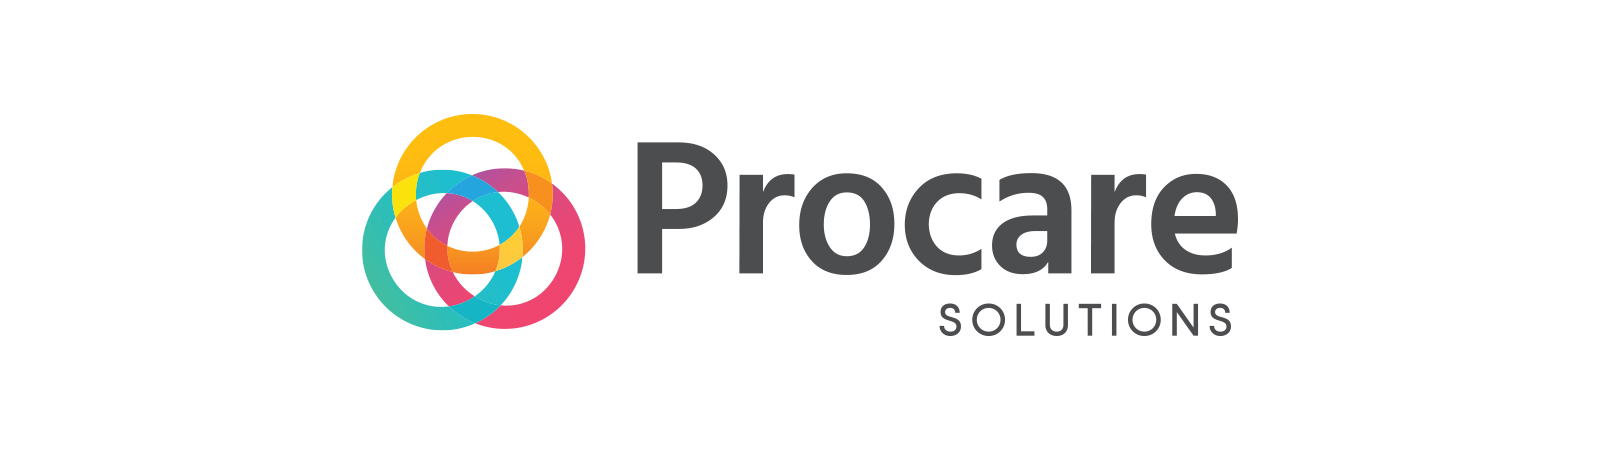 Procare Solutions | Technology Sector | TA | A Private Equity Firm